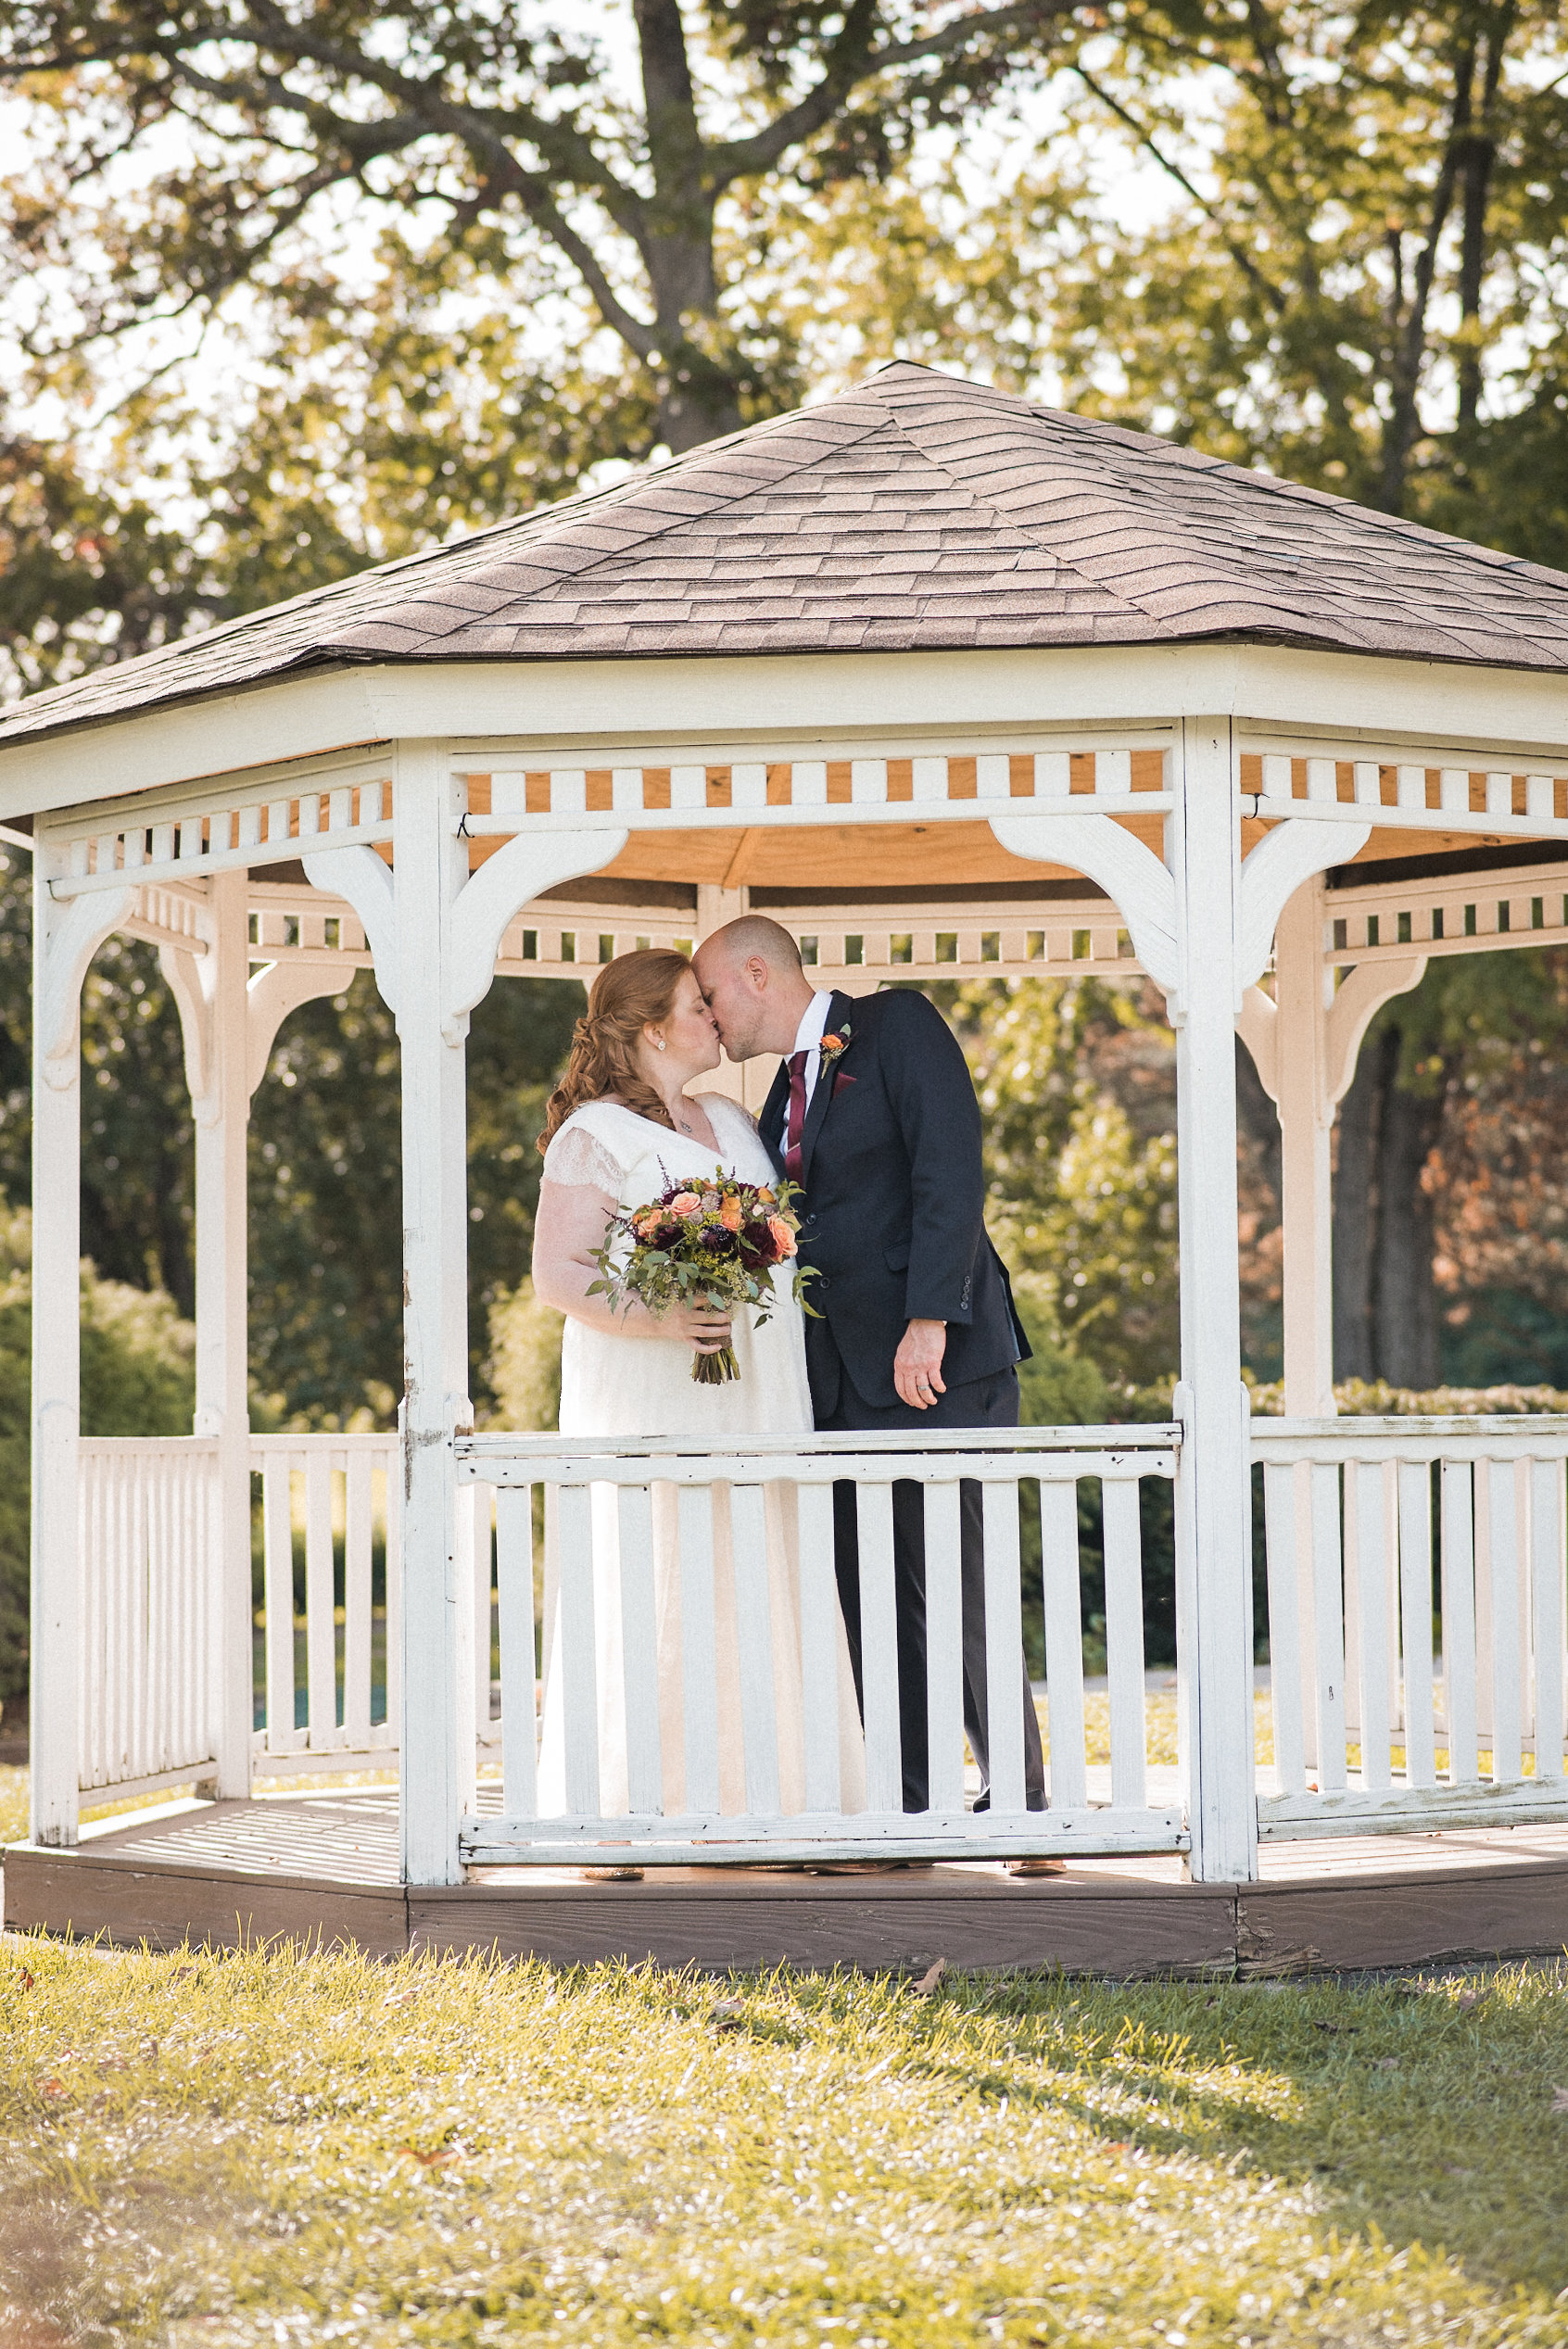 Bride and groom kissing in gazebo